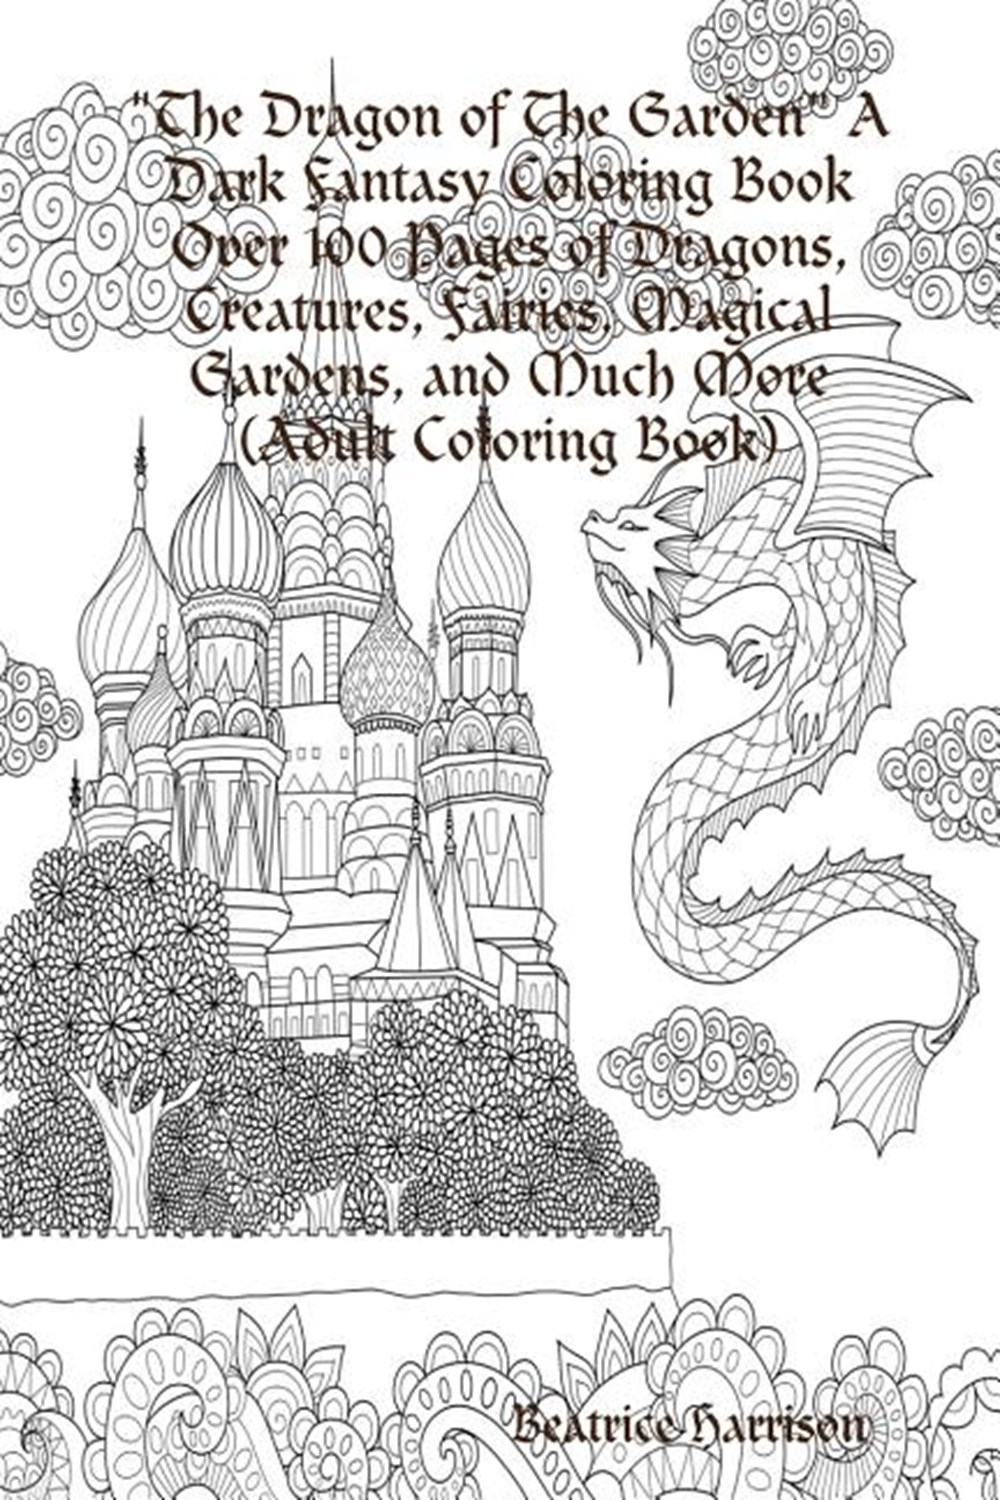 The Dragon Of The Garden A Dark Fantasy Coloring Book Over 100 Pages Of Dragons Creatures Fairies Magical Gardens And Much More Adult Coloring Bo By Beatrice Harrison